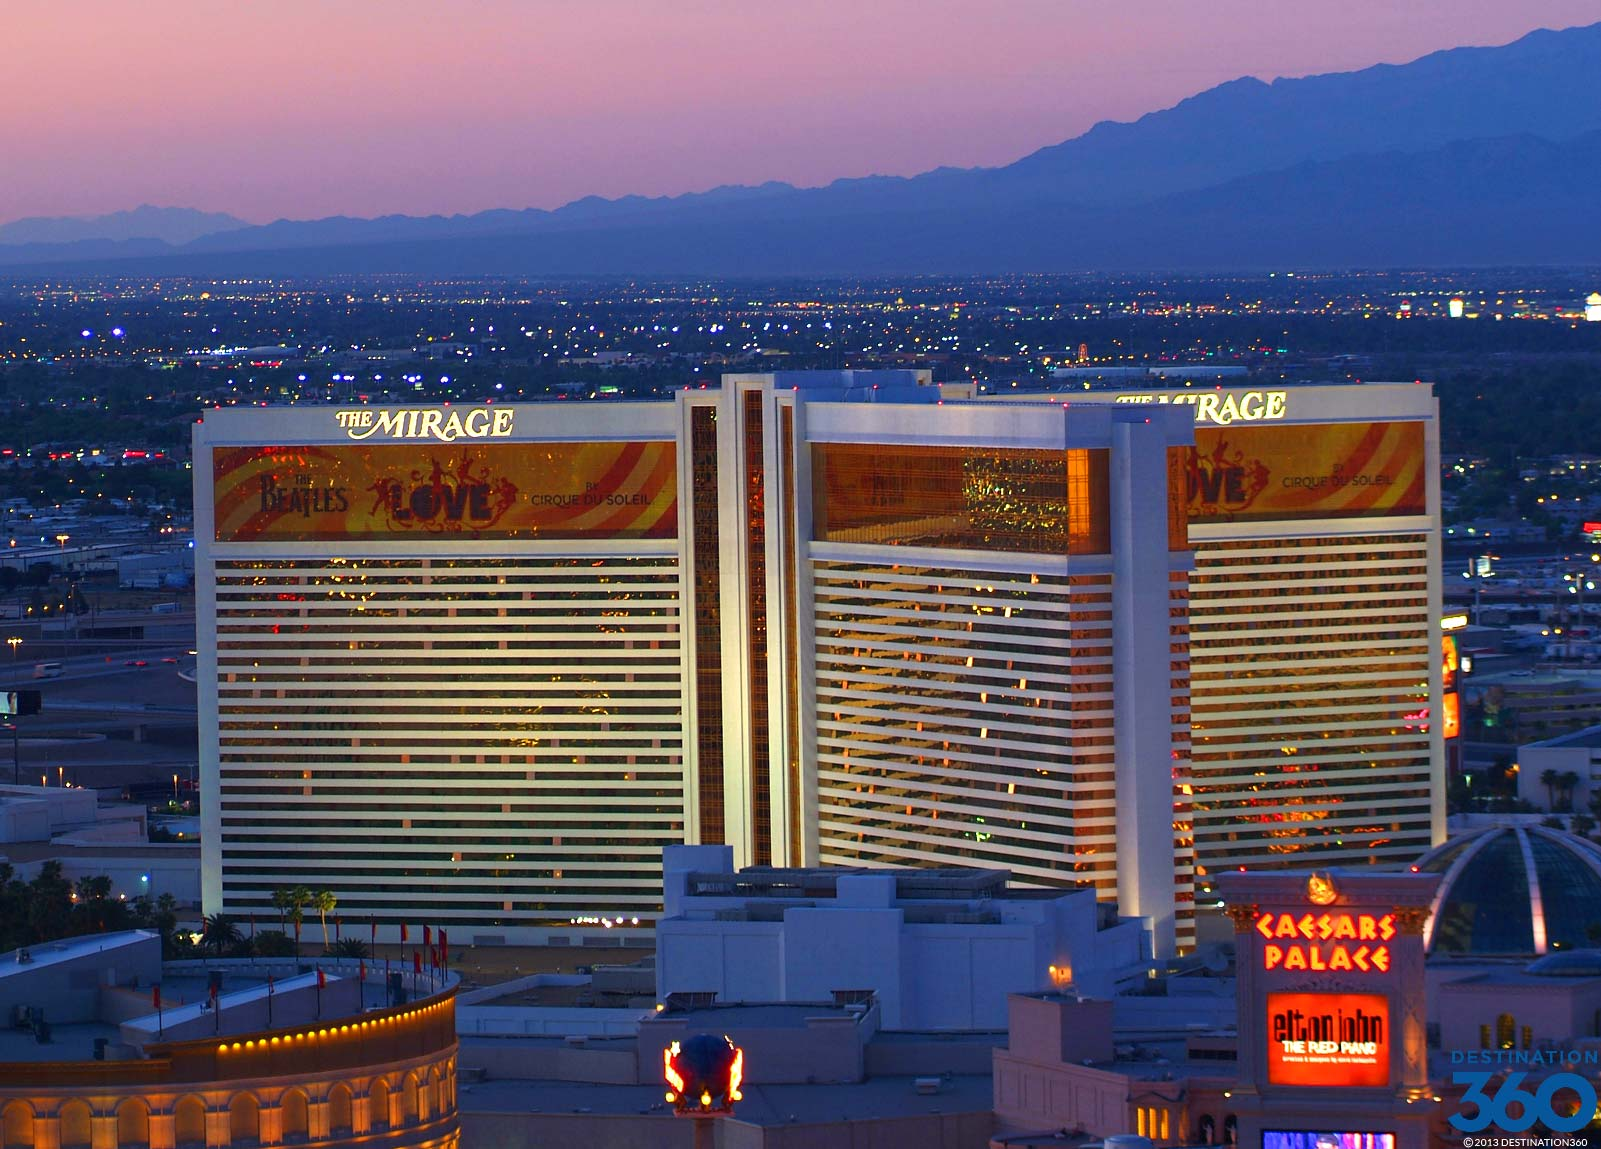 The Mirage, Nevada biggest hotels in the world